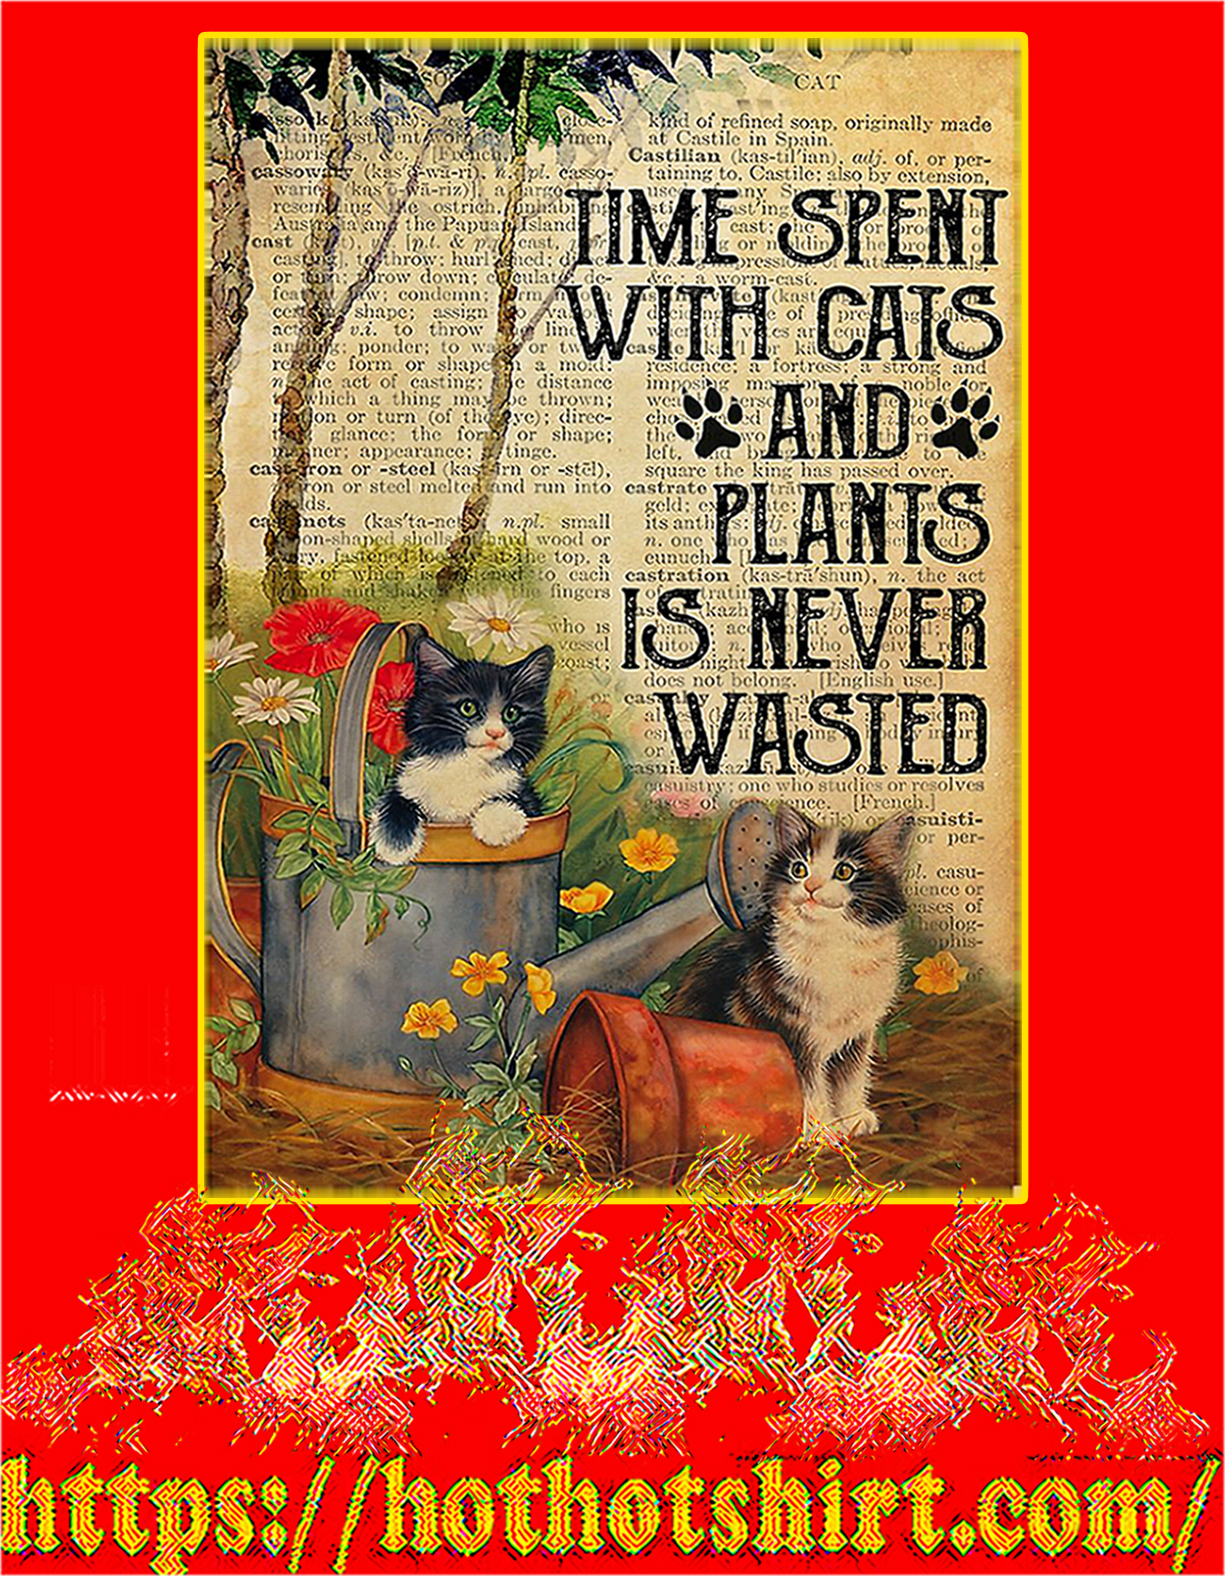 Dictionary Time spent with cats and plants is never wasted poster - A4